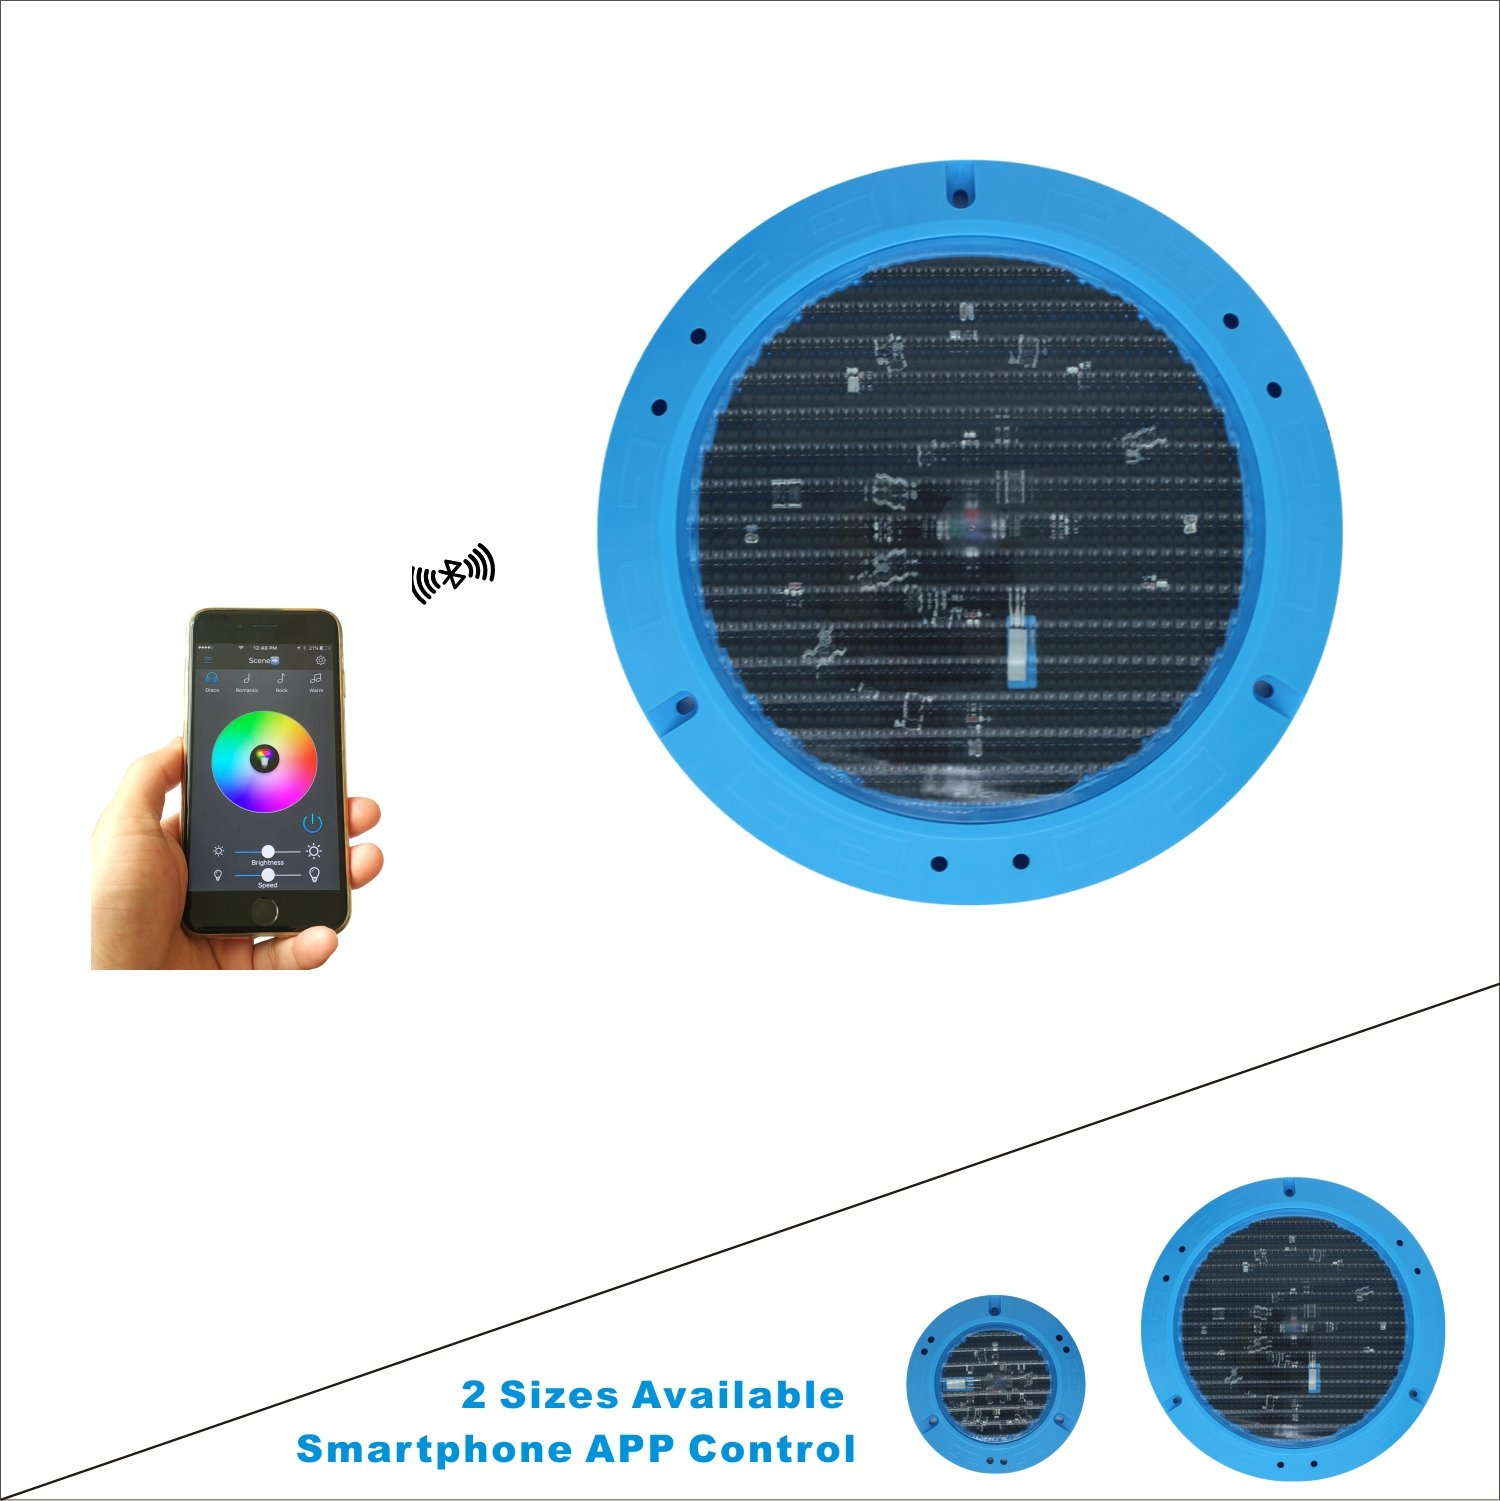 Ipoolight Universal 30 Feet Cord Large LED Color Changeable Underwater Pool/Spa Light Smartphone Bluetooth Control Outdoor Control Box by Ipoolight